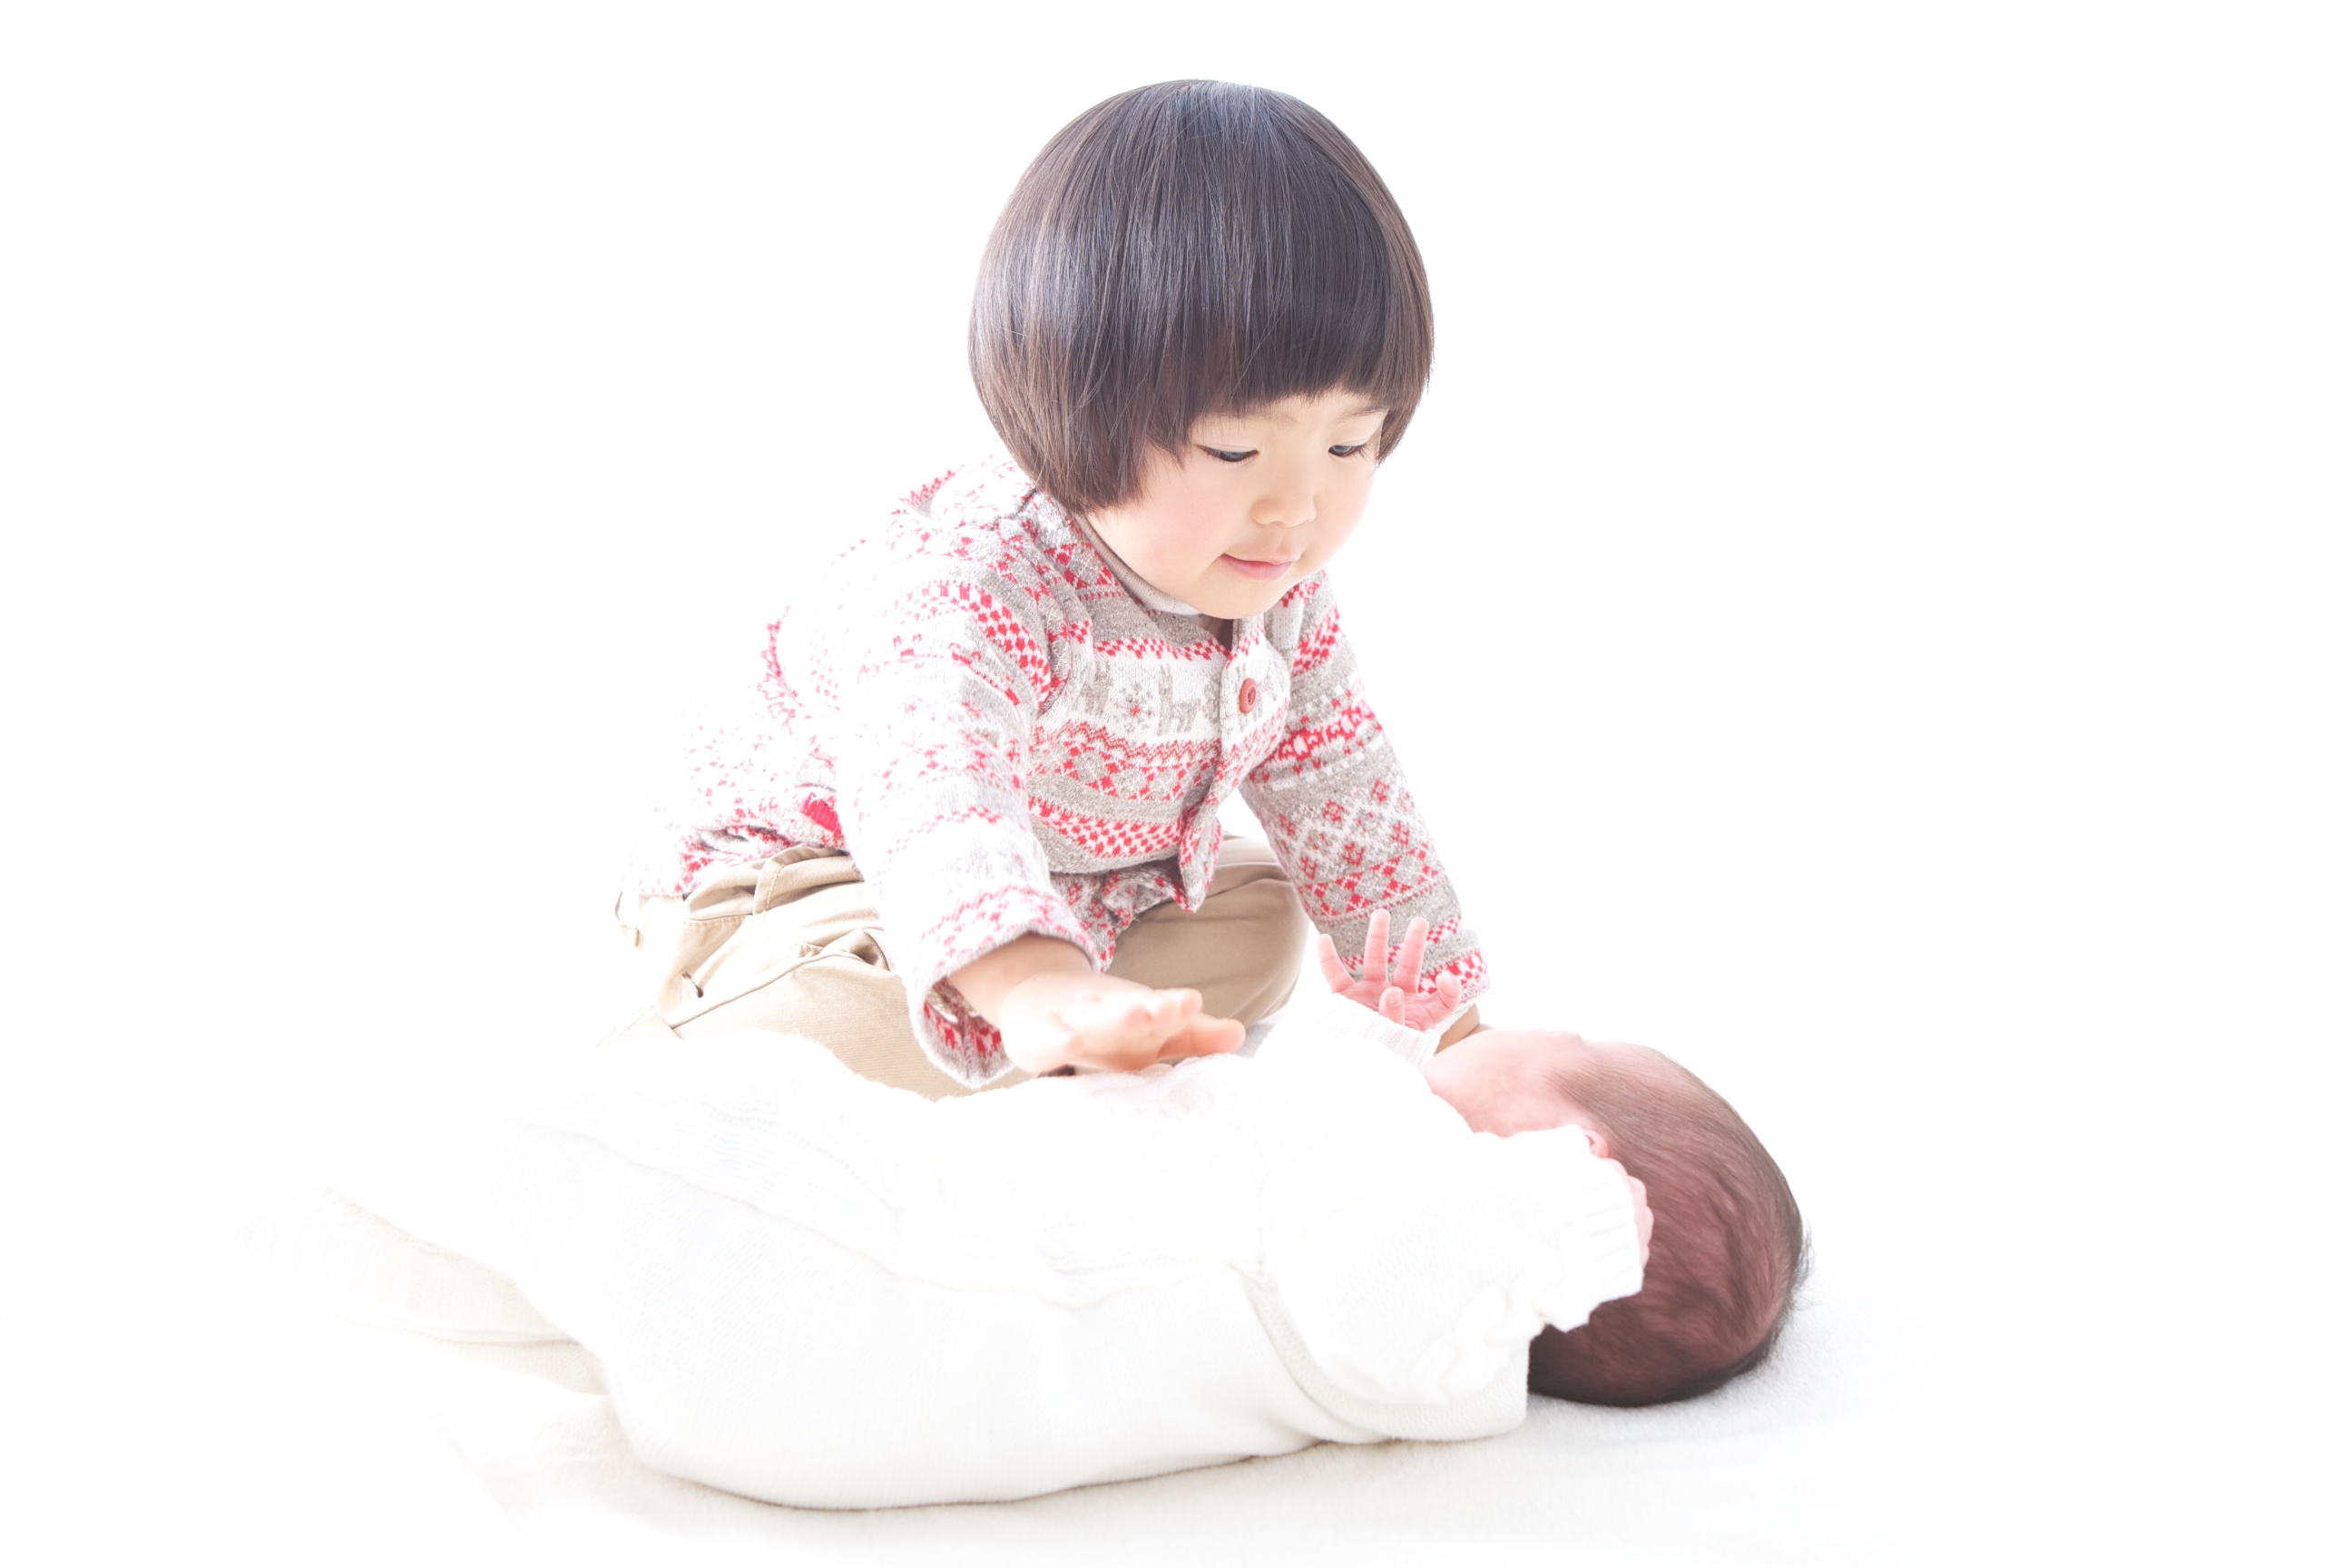 BABY-TOKEI x photo studio イメージ